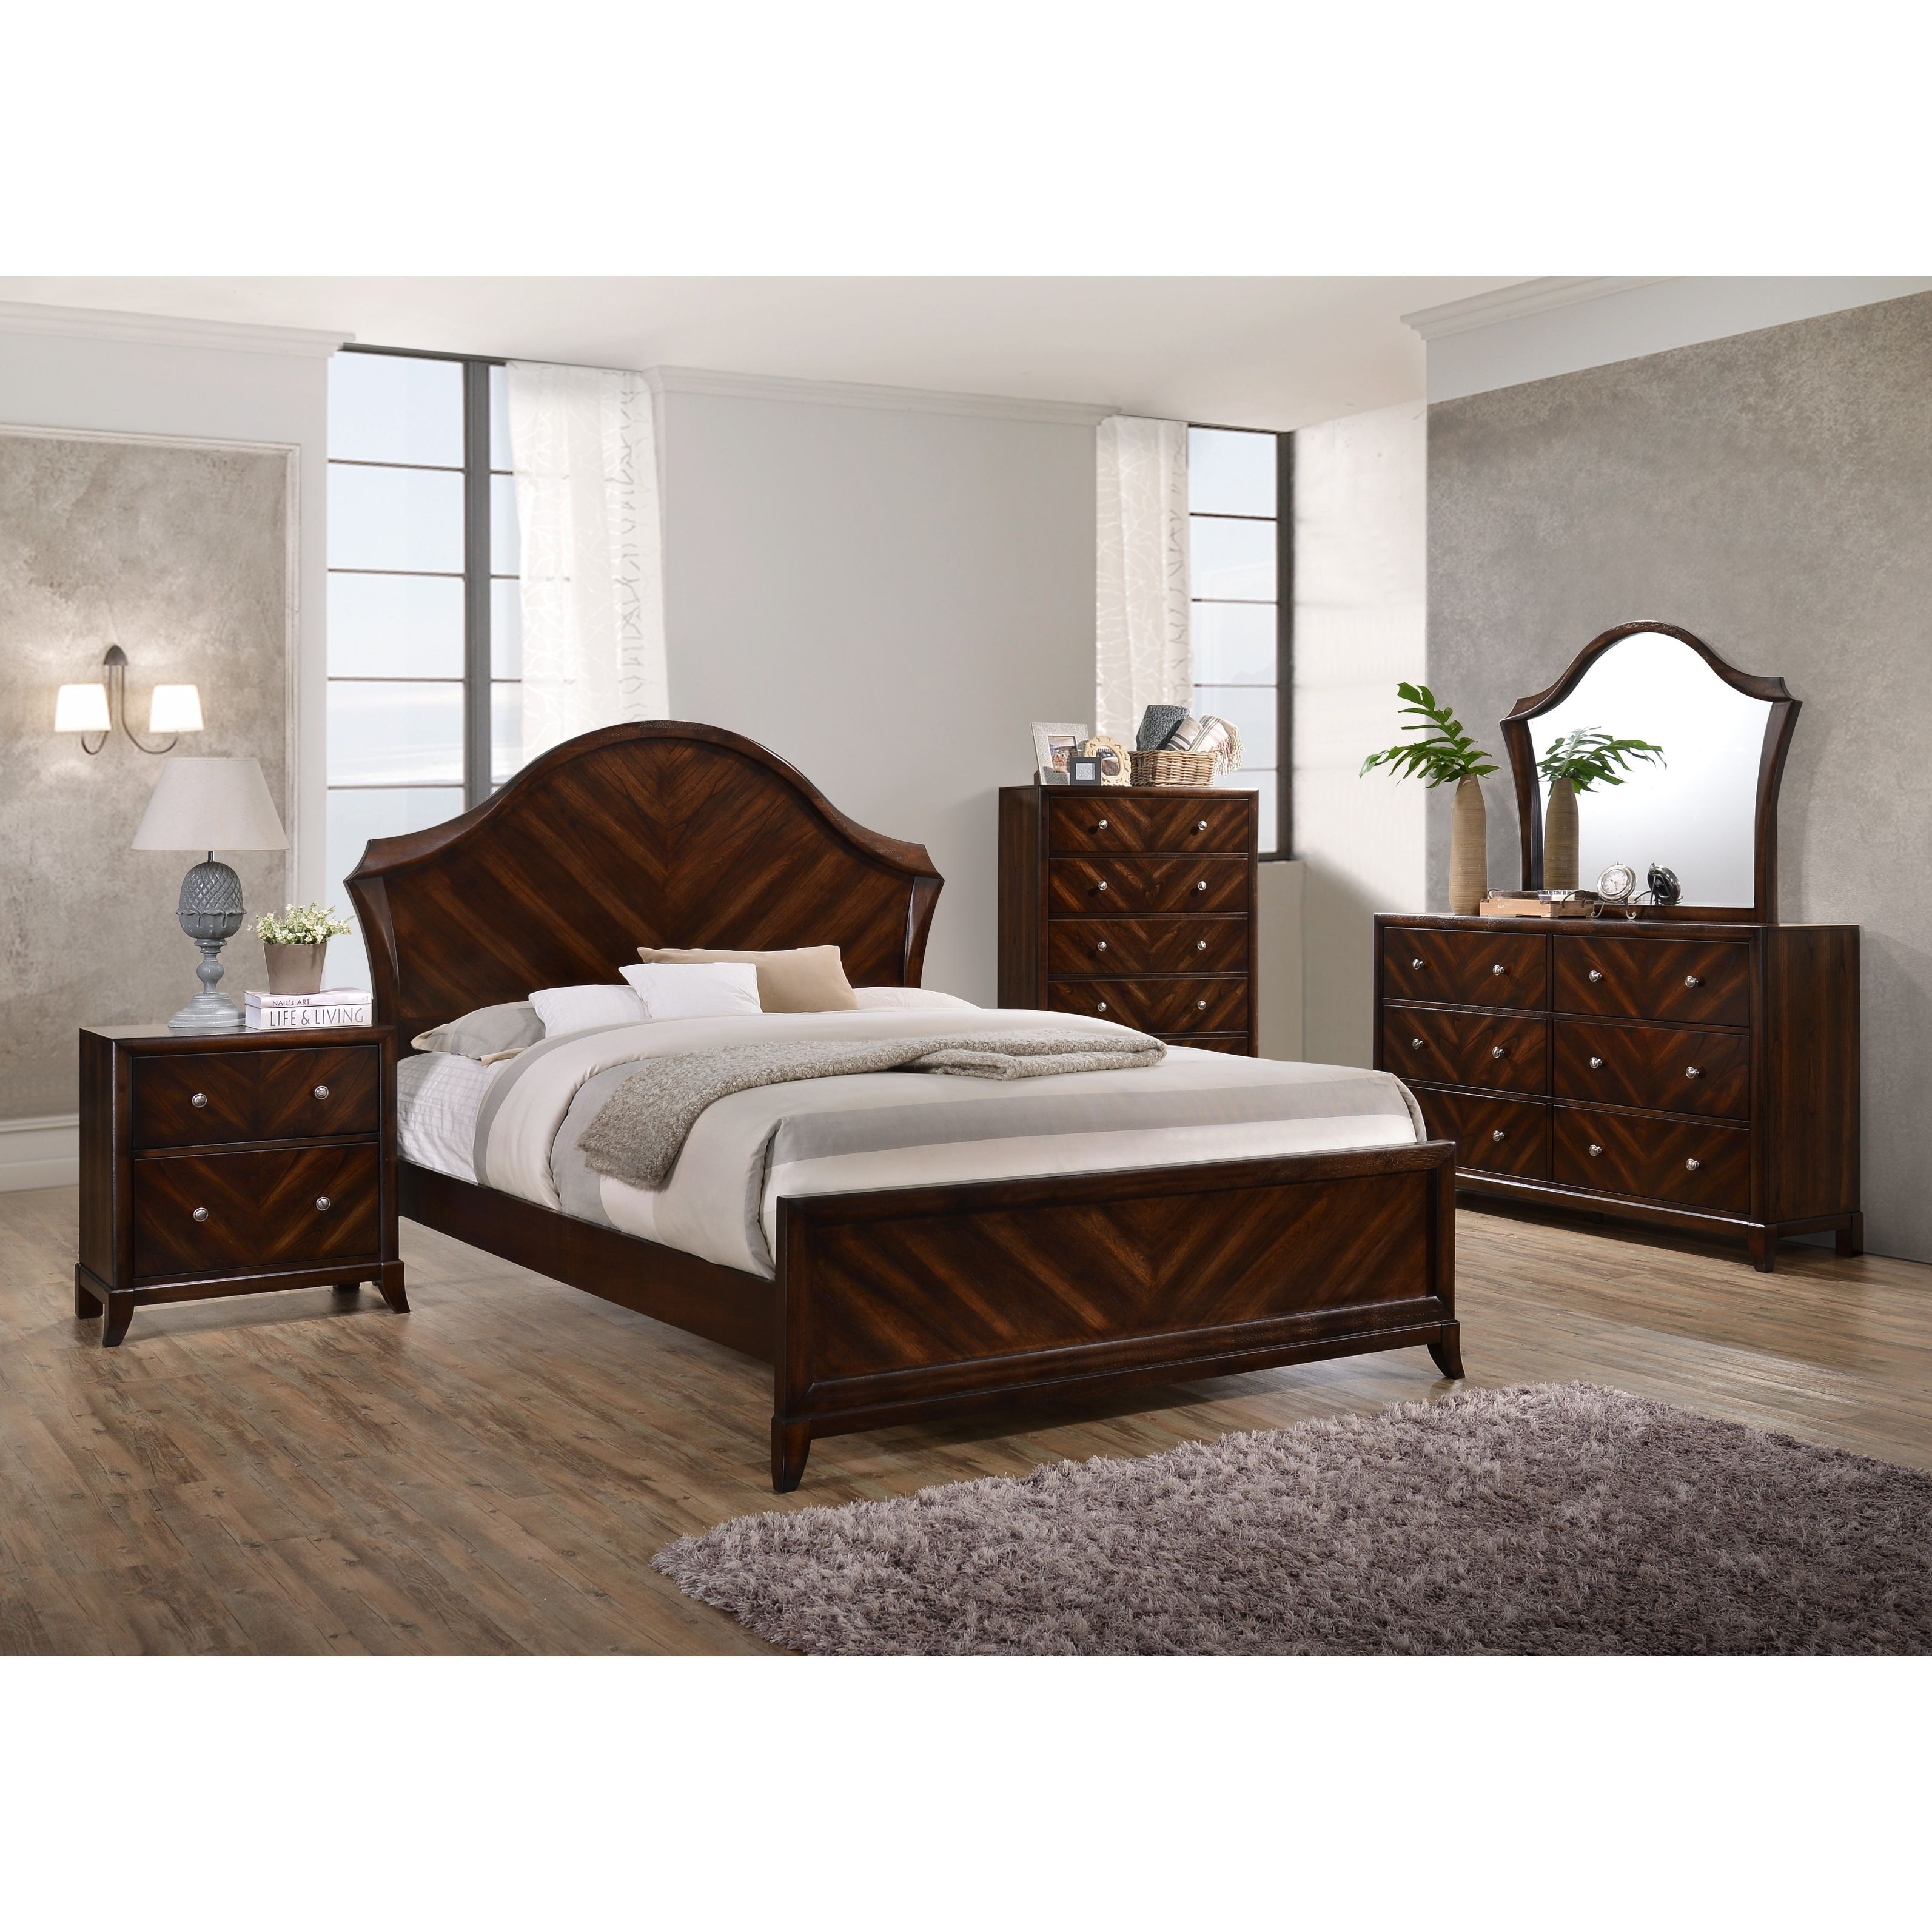 B1604-15-16-12 Wenge Size Bed | Products | Pinterest